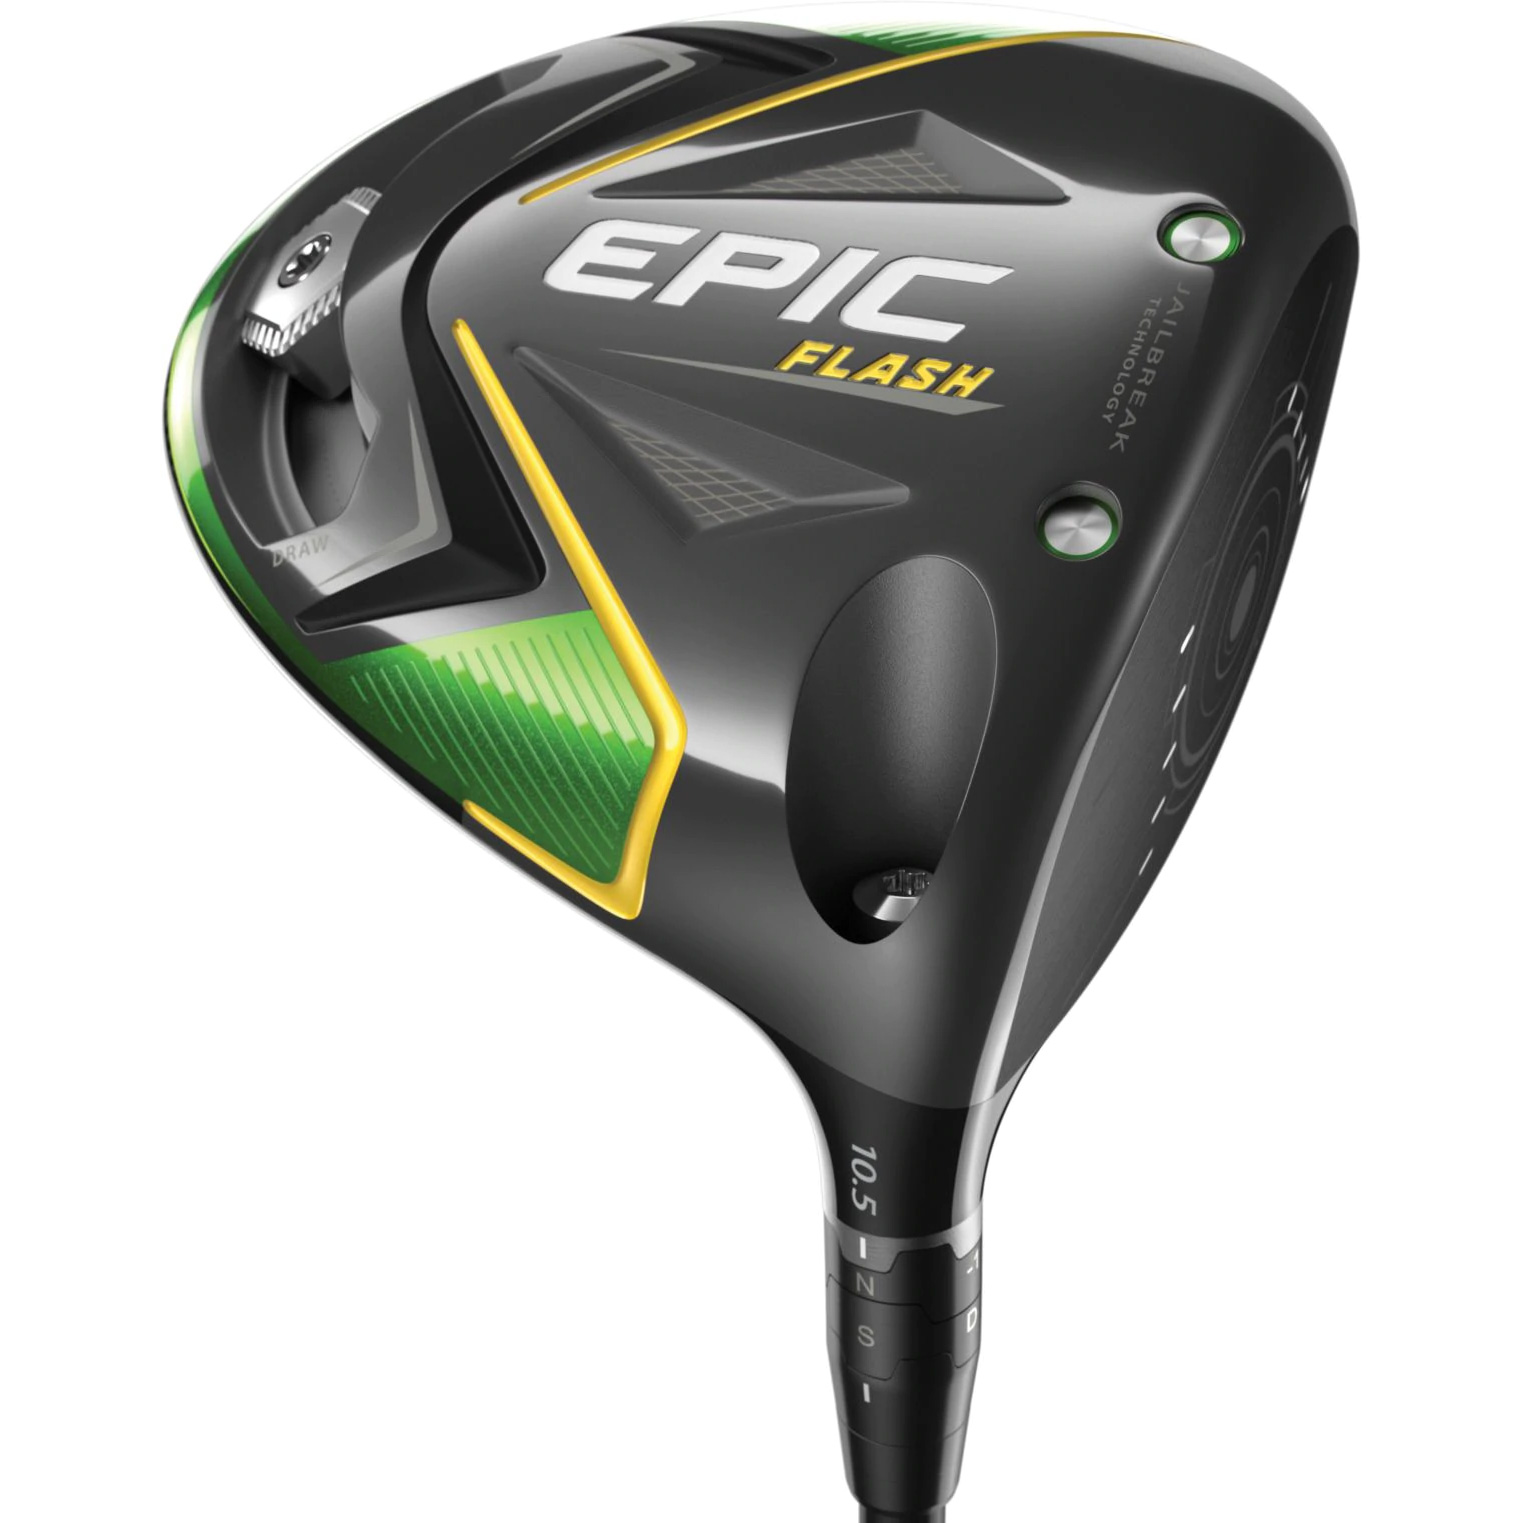 Callaway Epic Flash Driver w/ Project X Hzrdus Smoke 60 Shaft